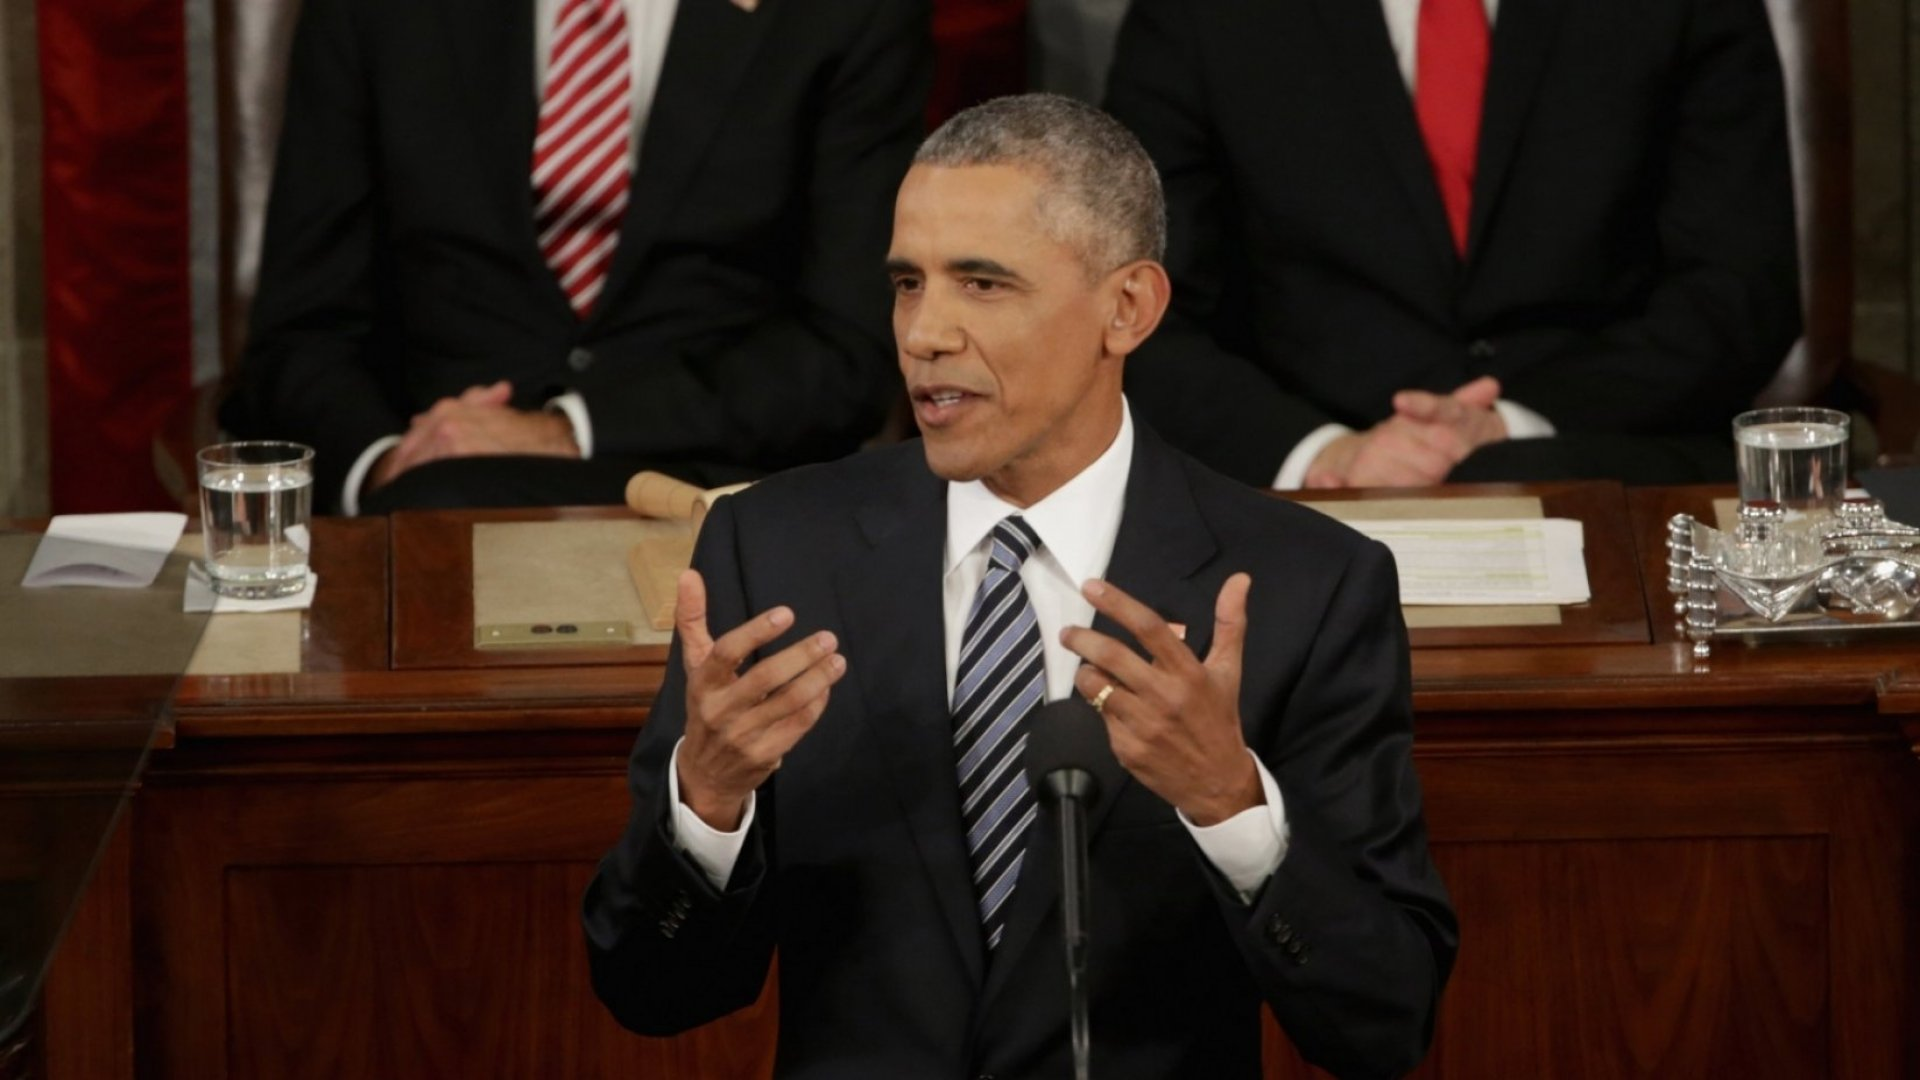 Want to Be a Brilliant Public Speaker? Take a Cue From One of President Obama's Quirks